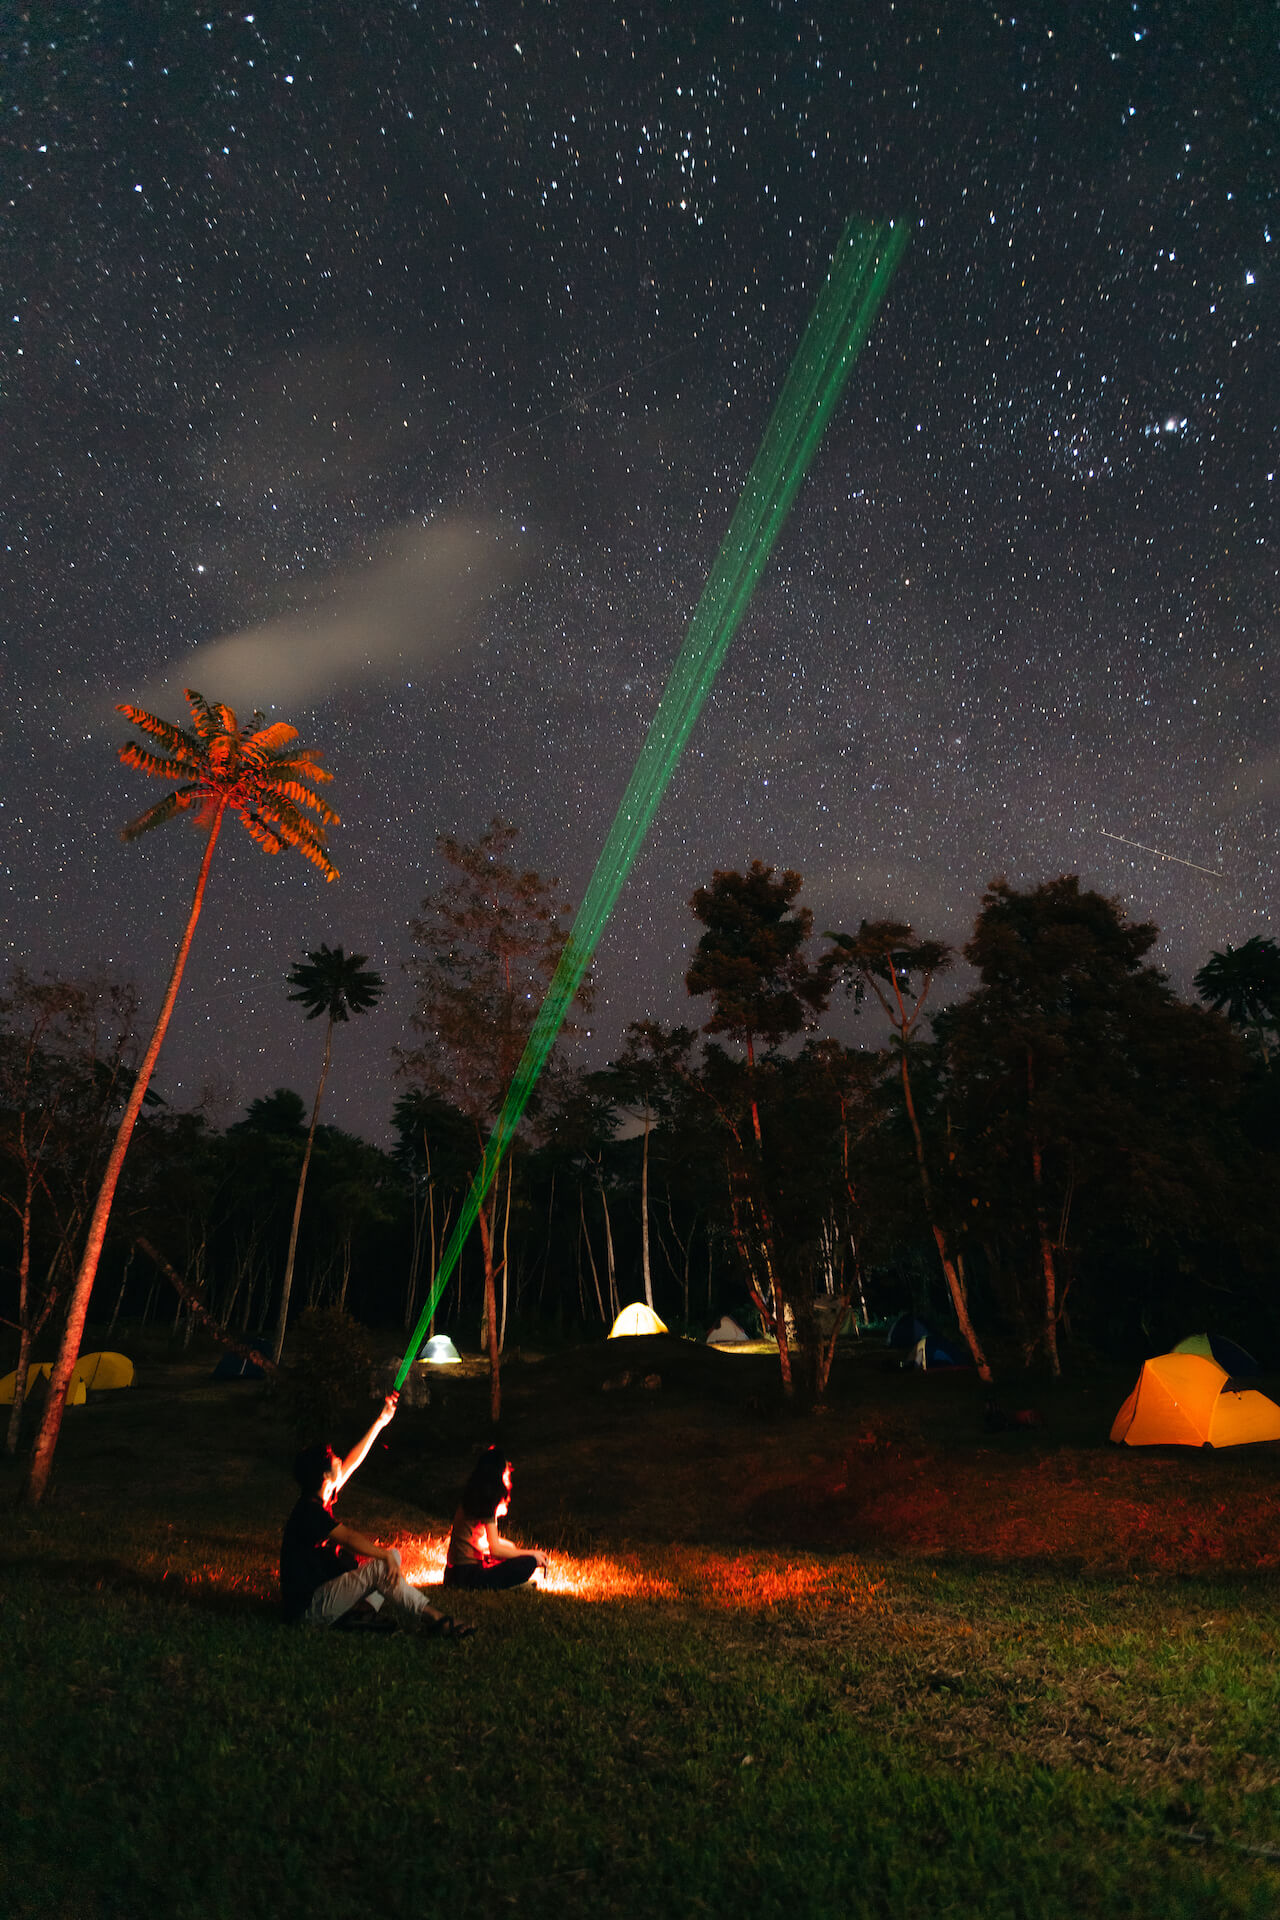 A member of the Philippine Astronomical Society points a laser at the stars